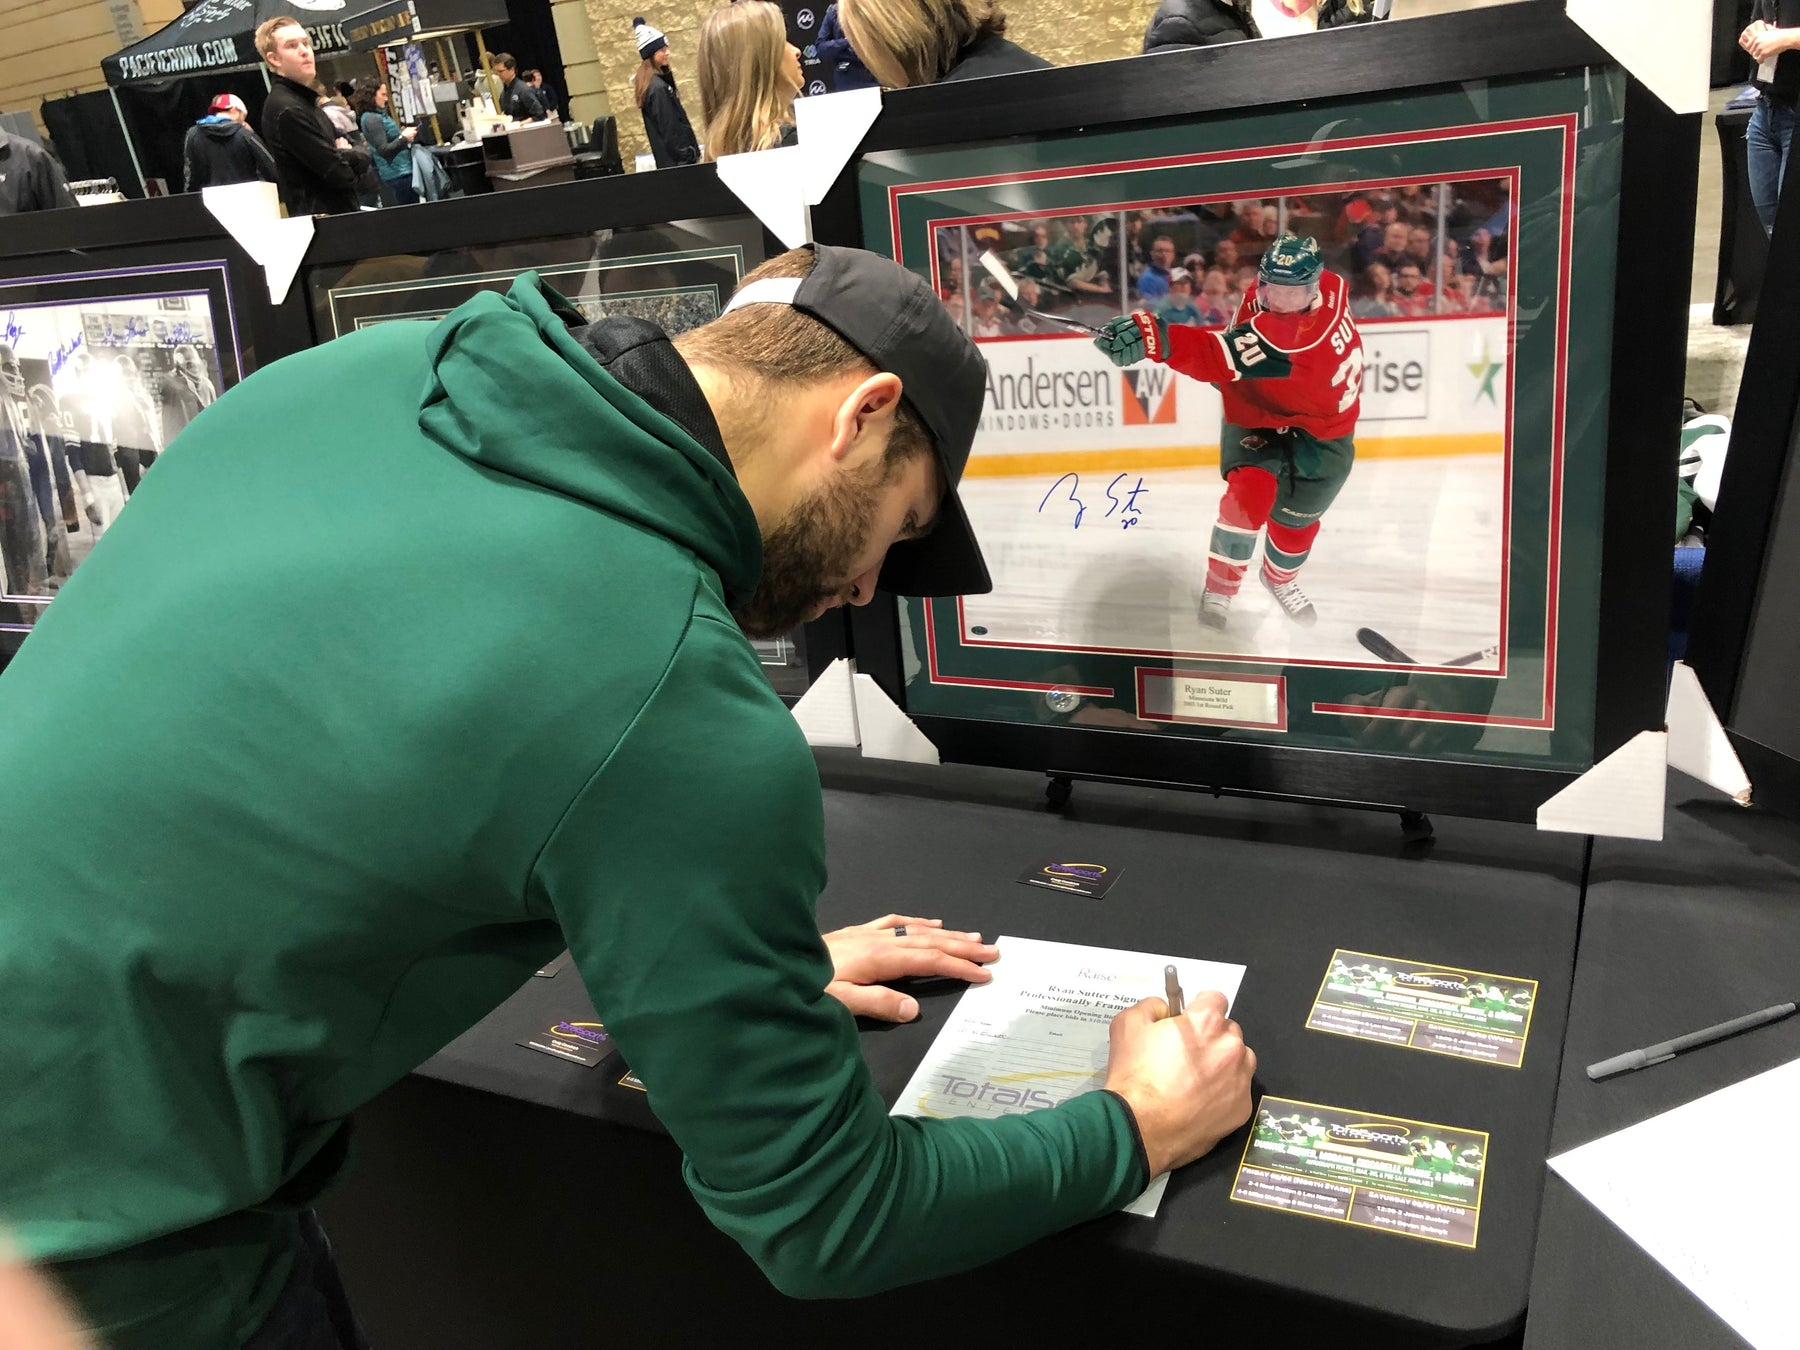 Auction For Jason Zucker's Foundation!